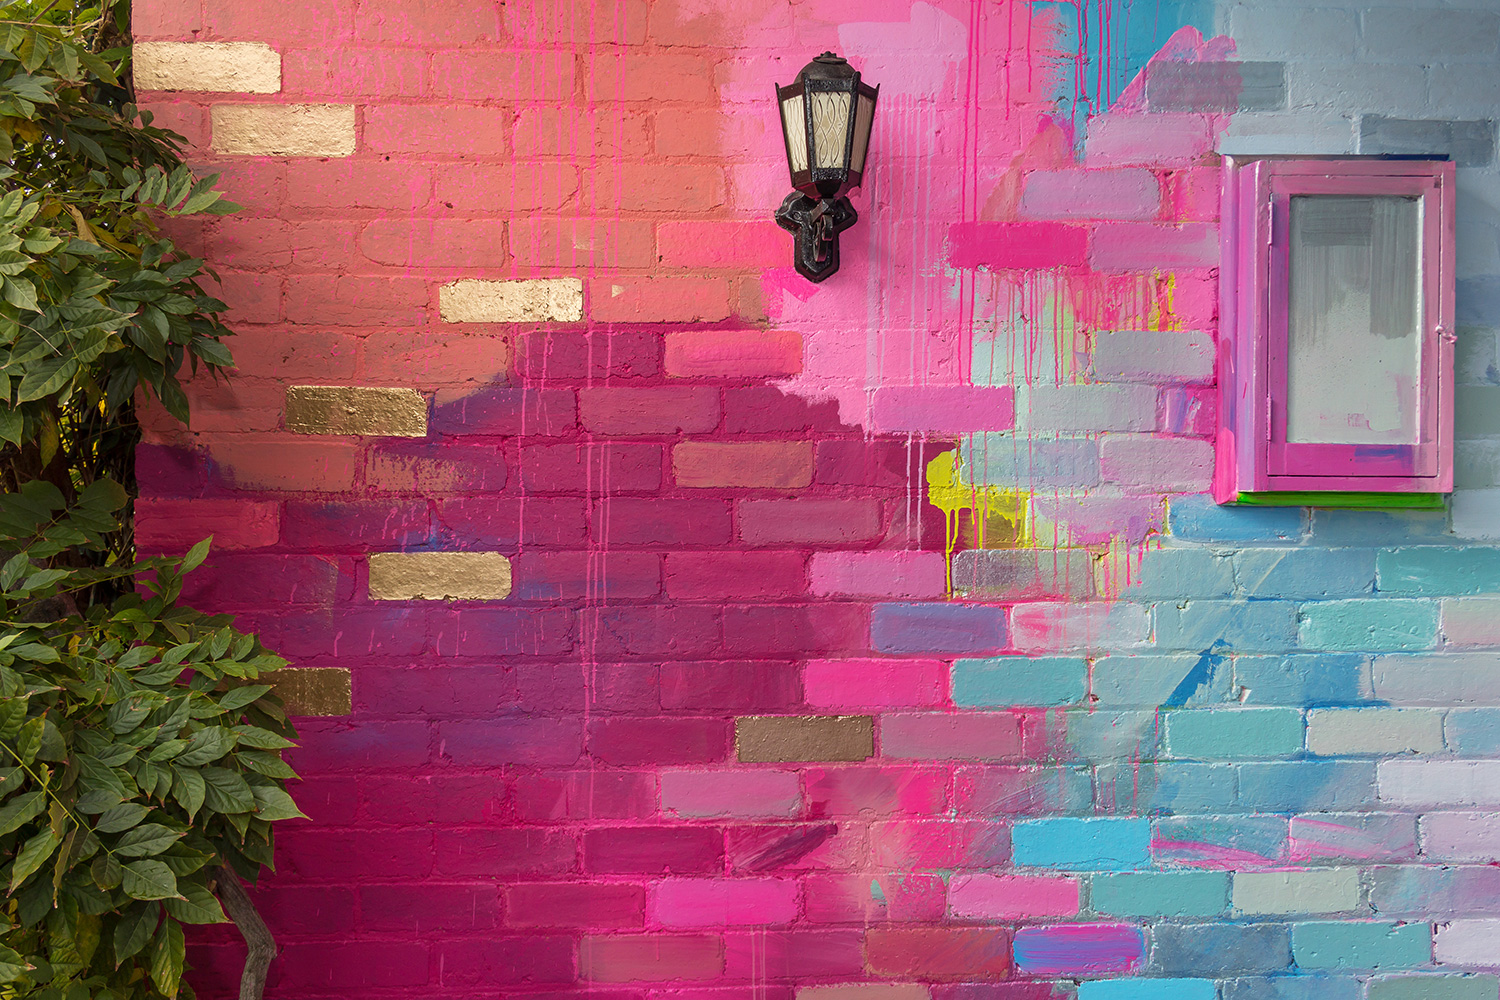 A residential home has been used as a giant art canvas, with a vibrant, abstract design painted on the bricks in a color palette of pink, blue and metallic.